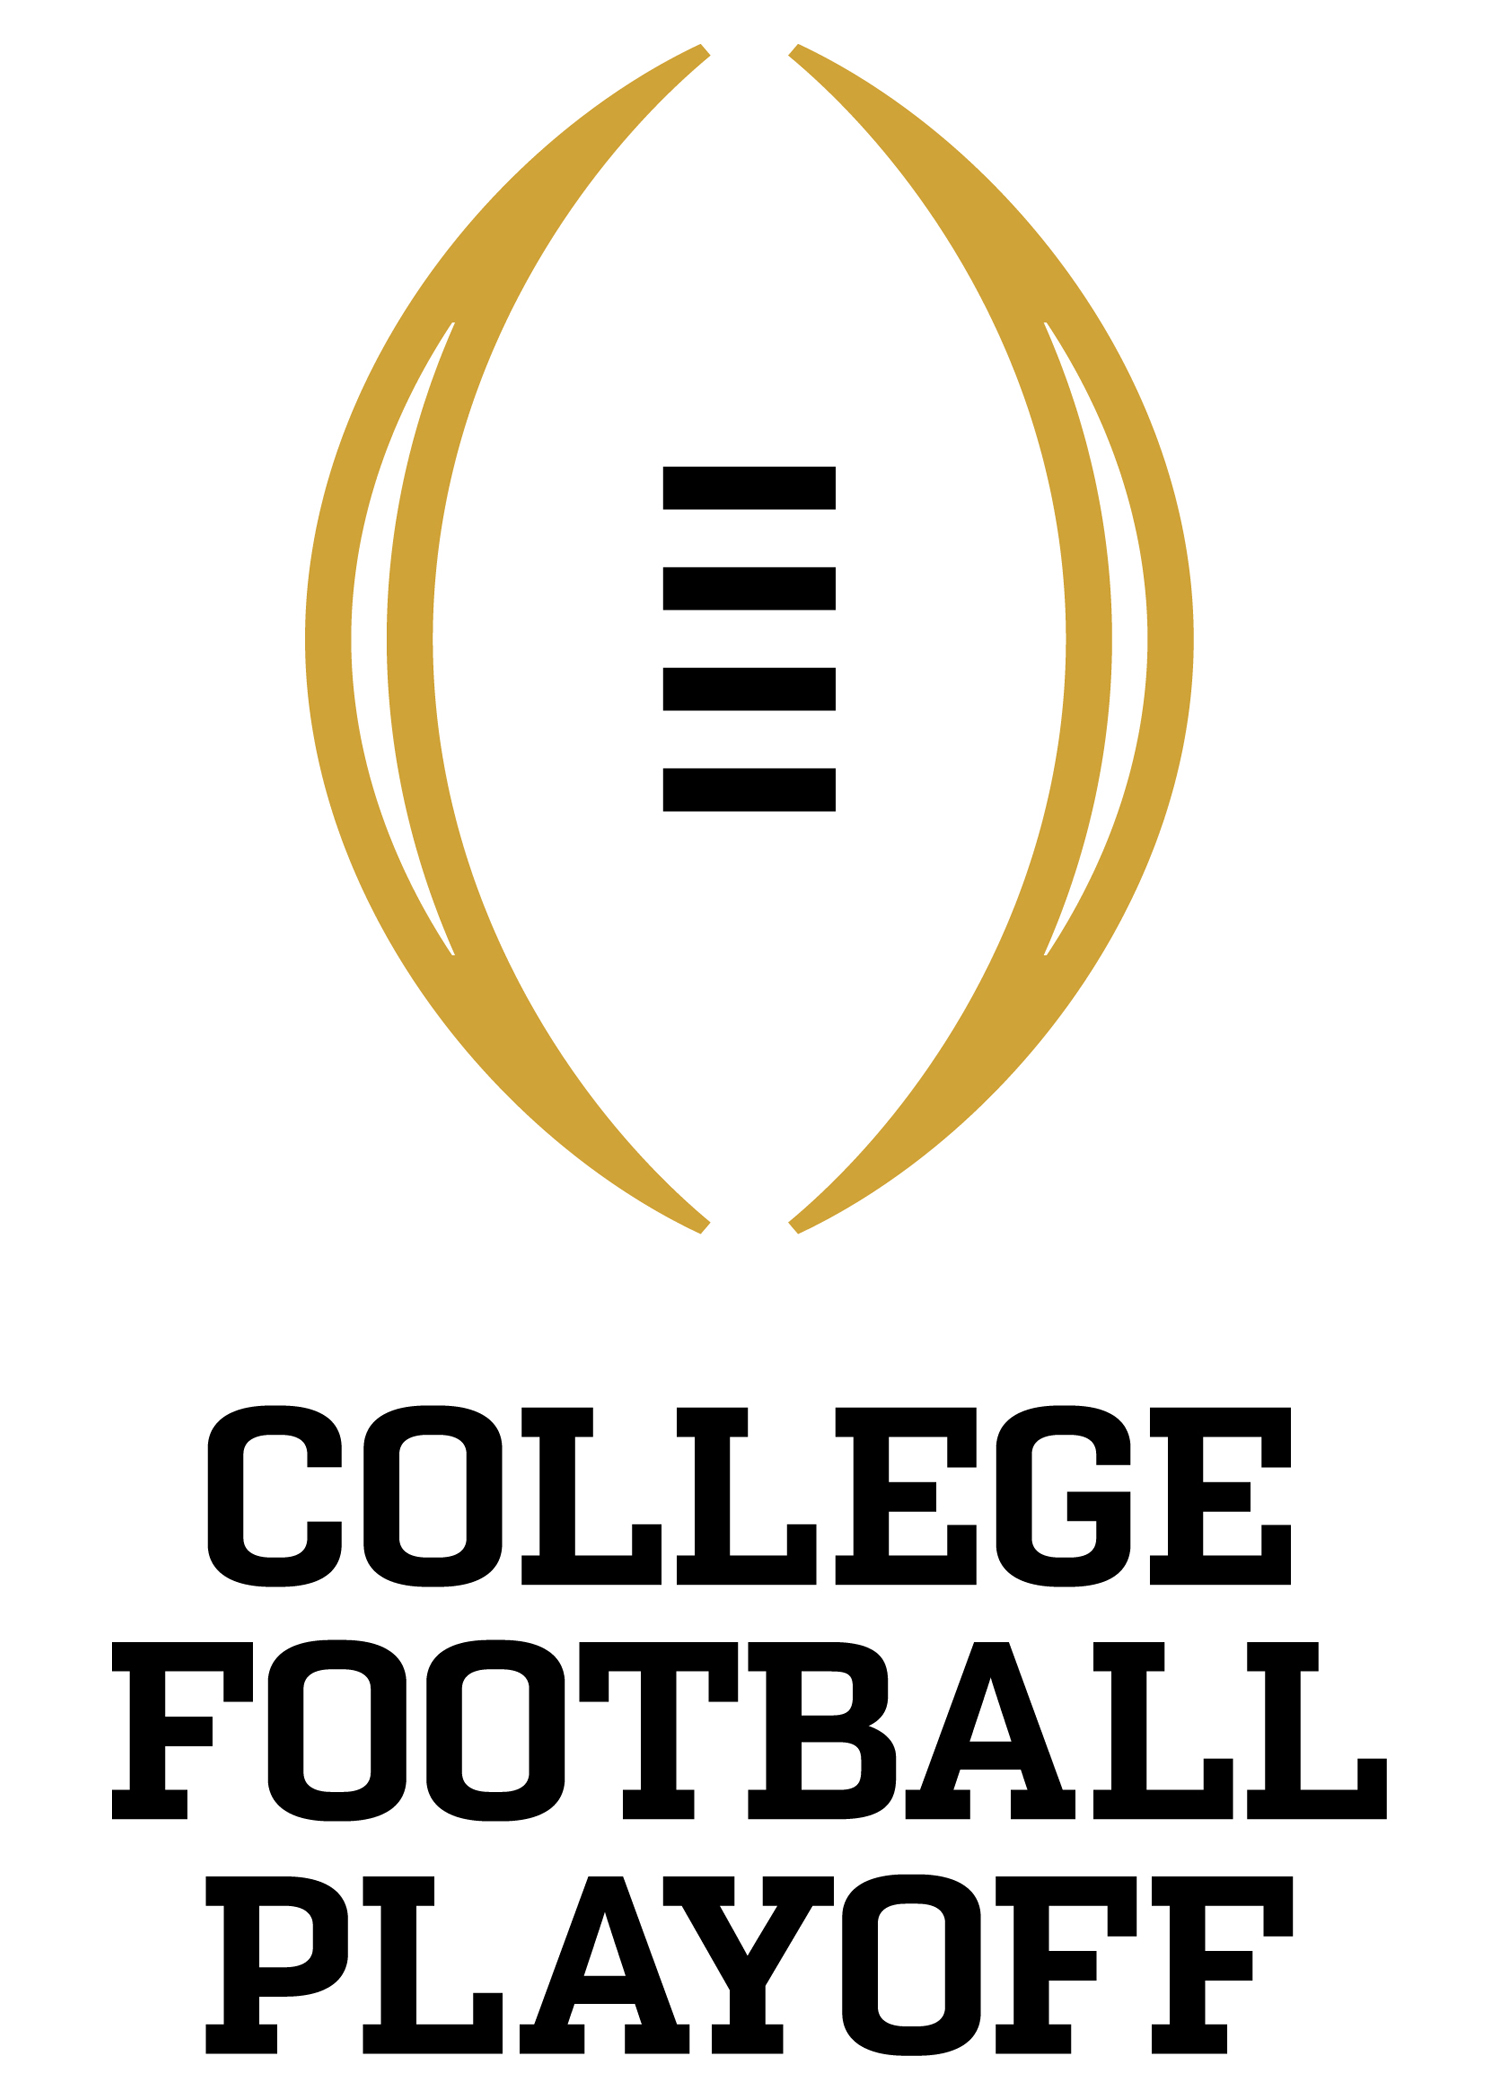 games on saturday playoff college football